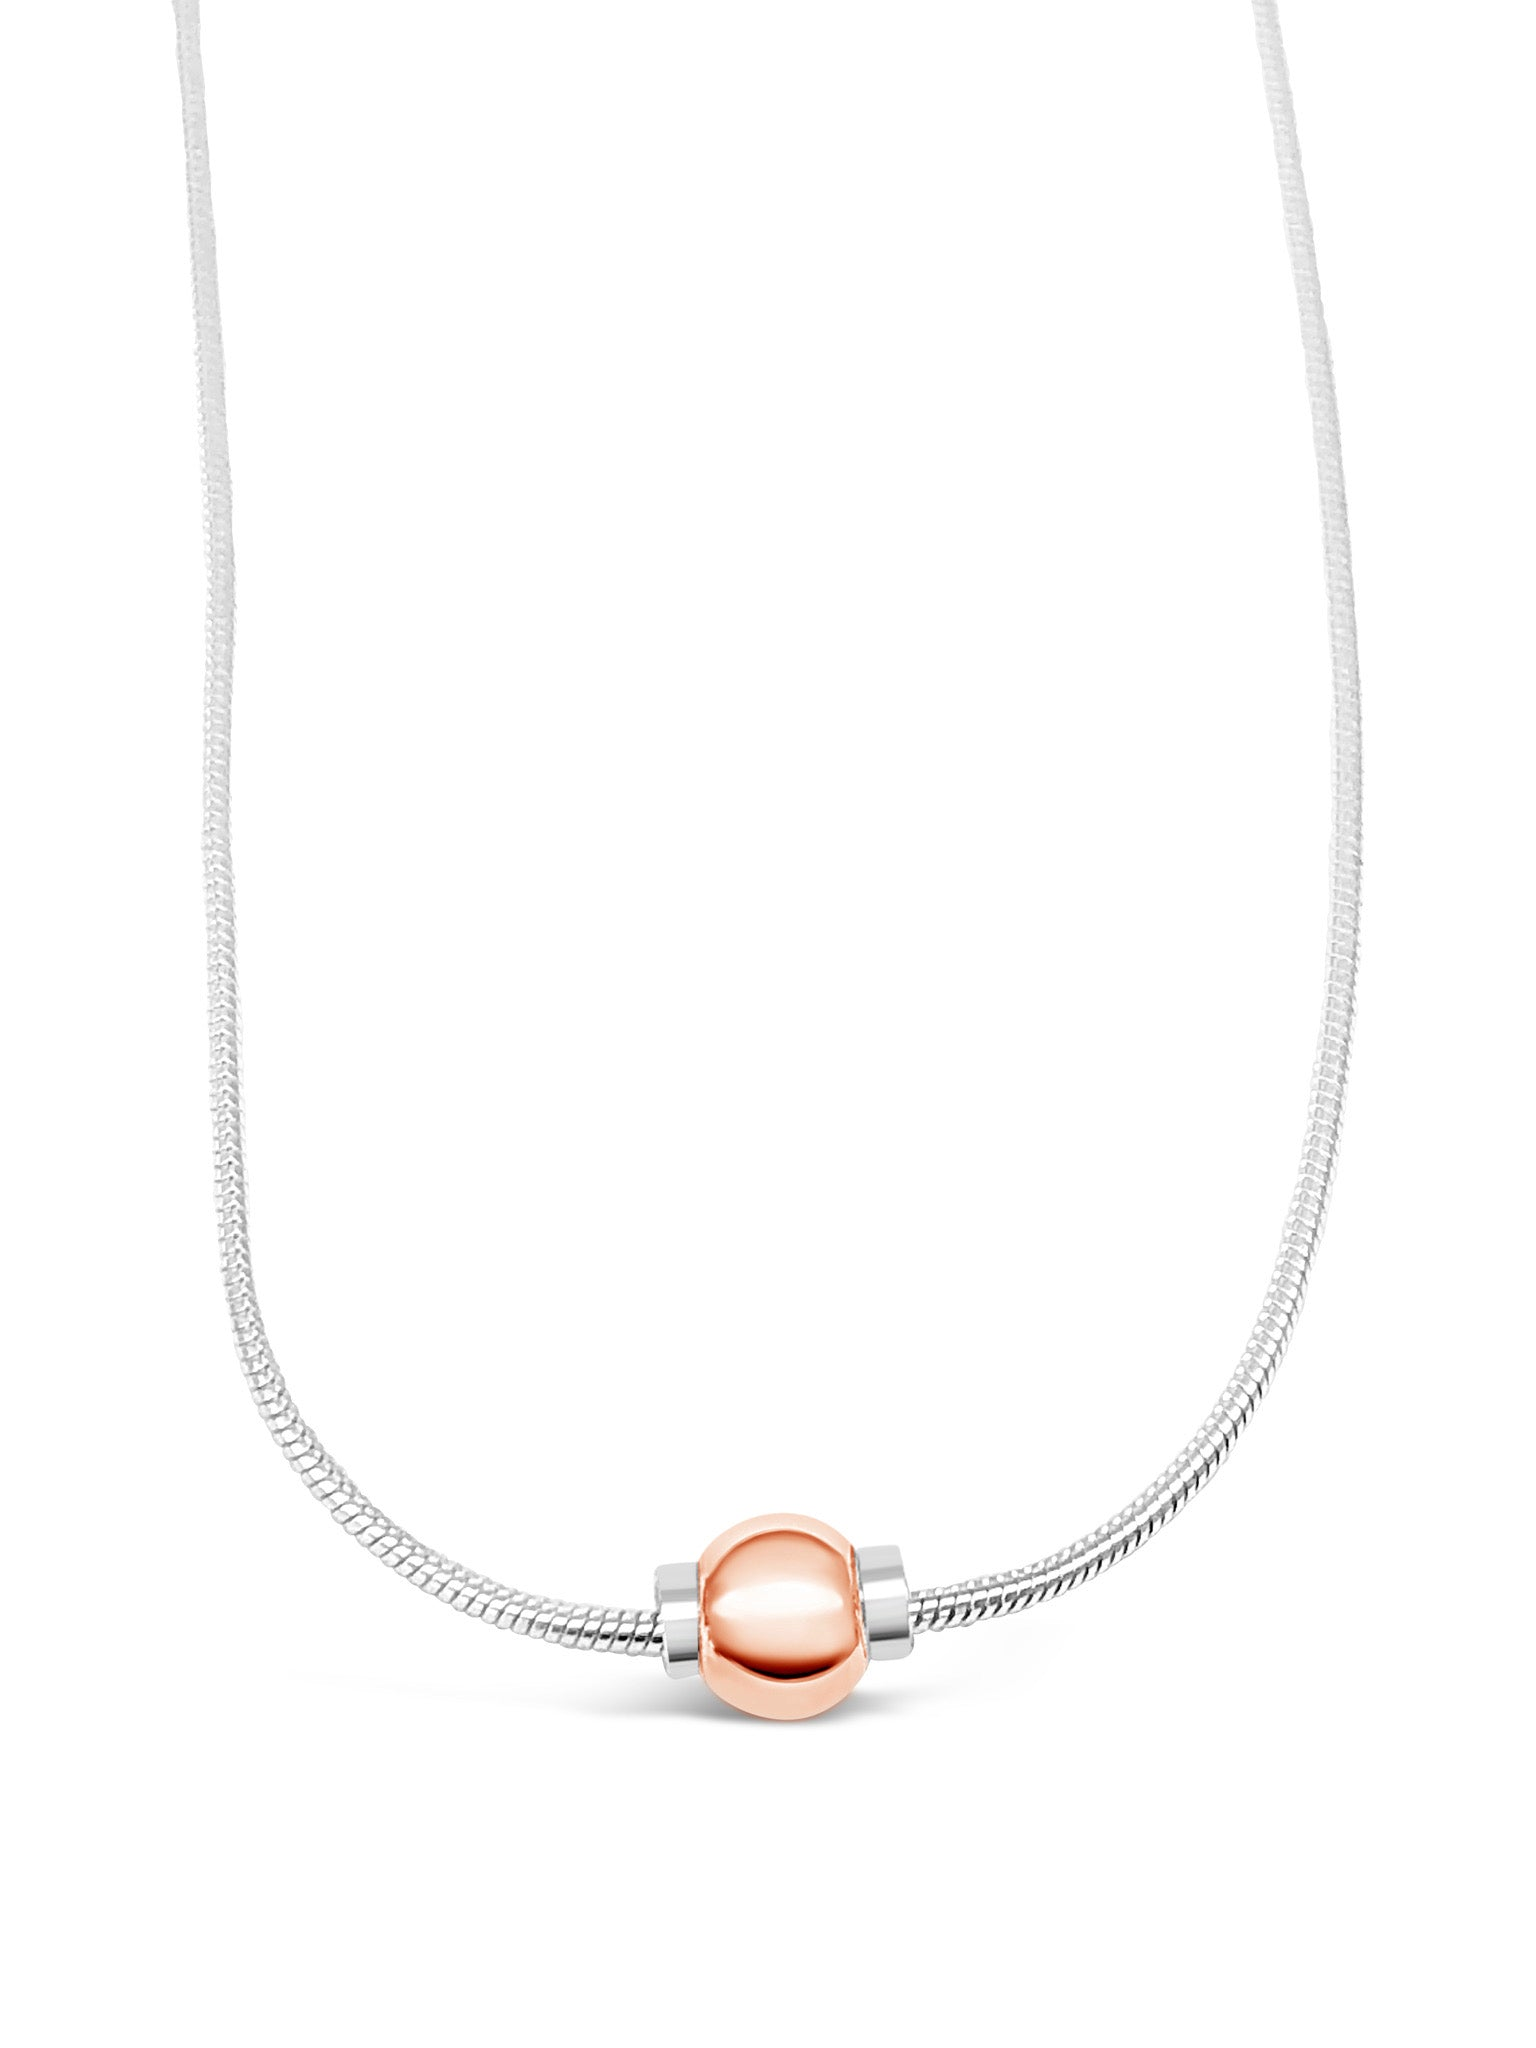 Cape Cod Beach Ball Necklace - 925 Silver/Rose Gold Filled